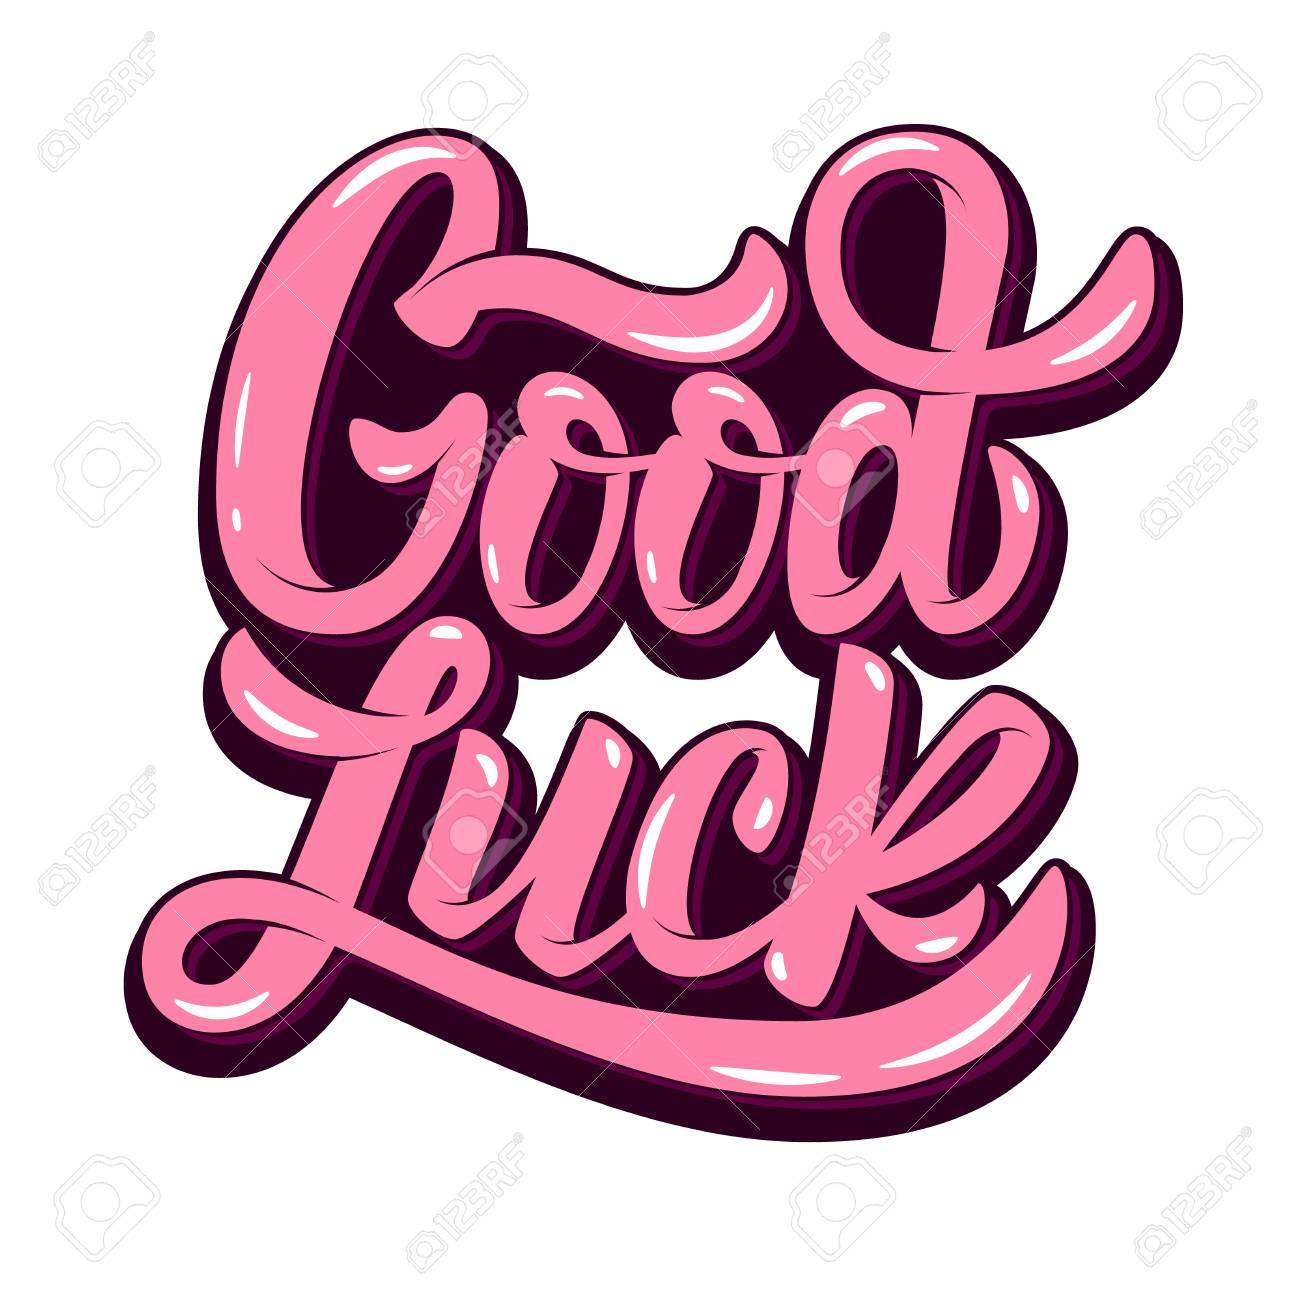 good luck. Hand drawn lettering phrase isolated on white background. - 74887823